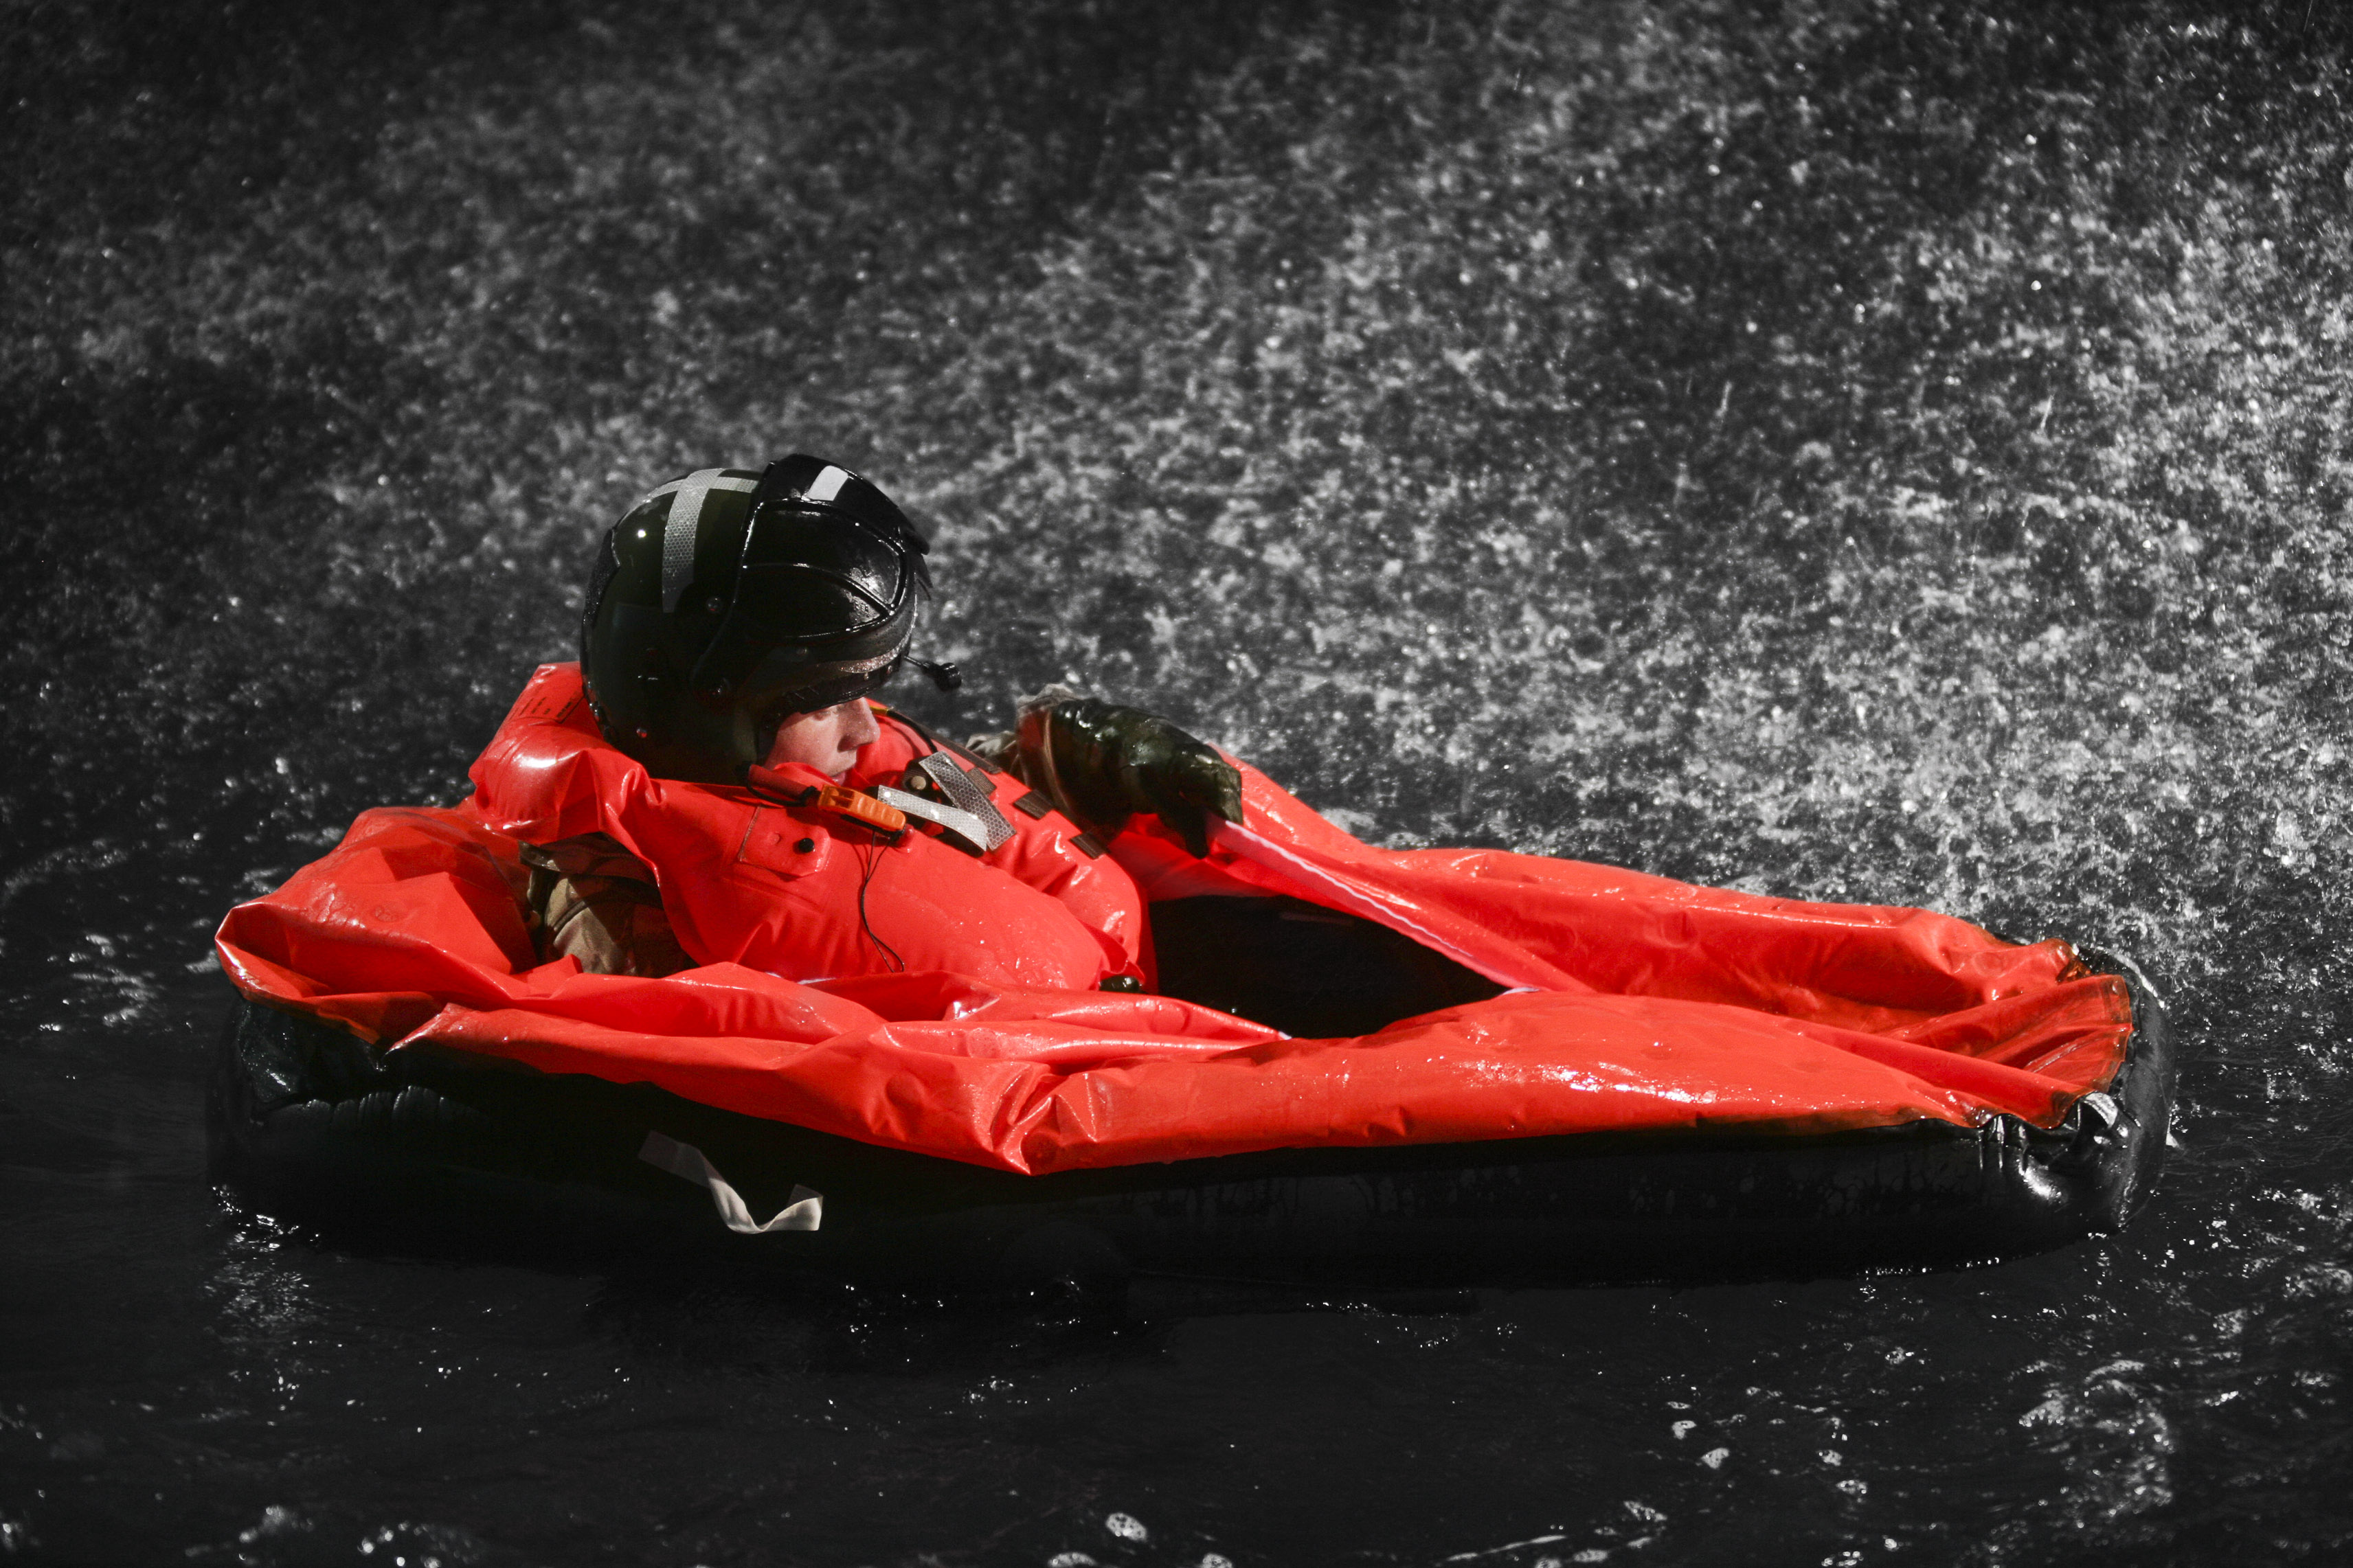 Image depicting the Survivtec life preserver and immersion protection garment